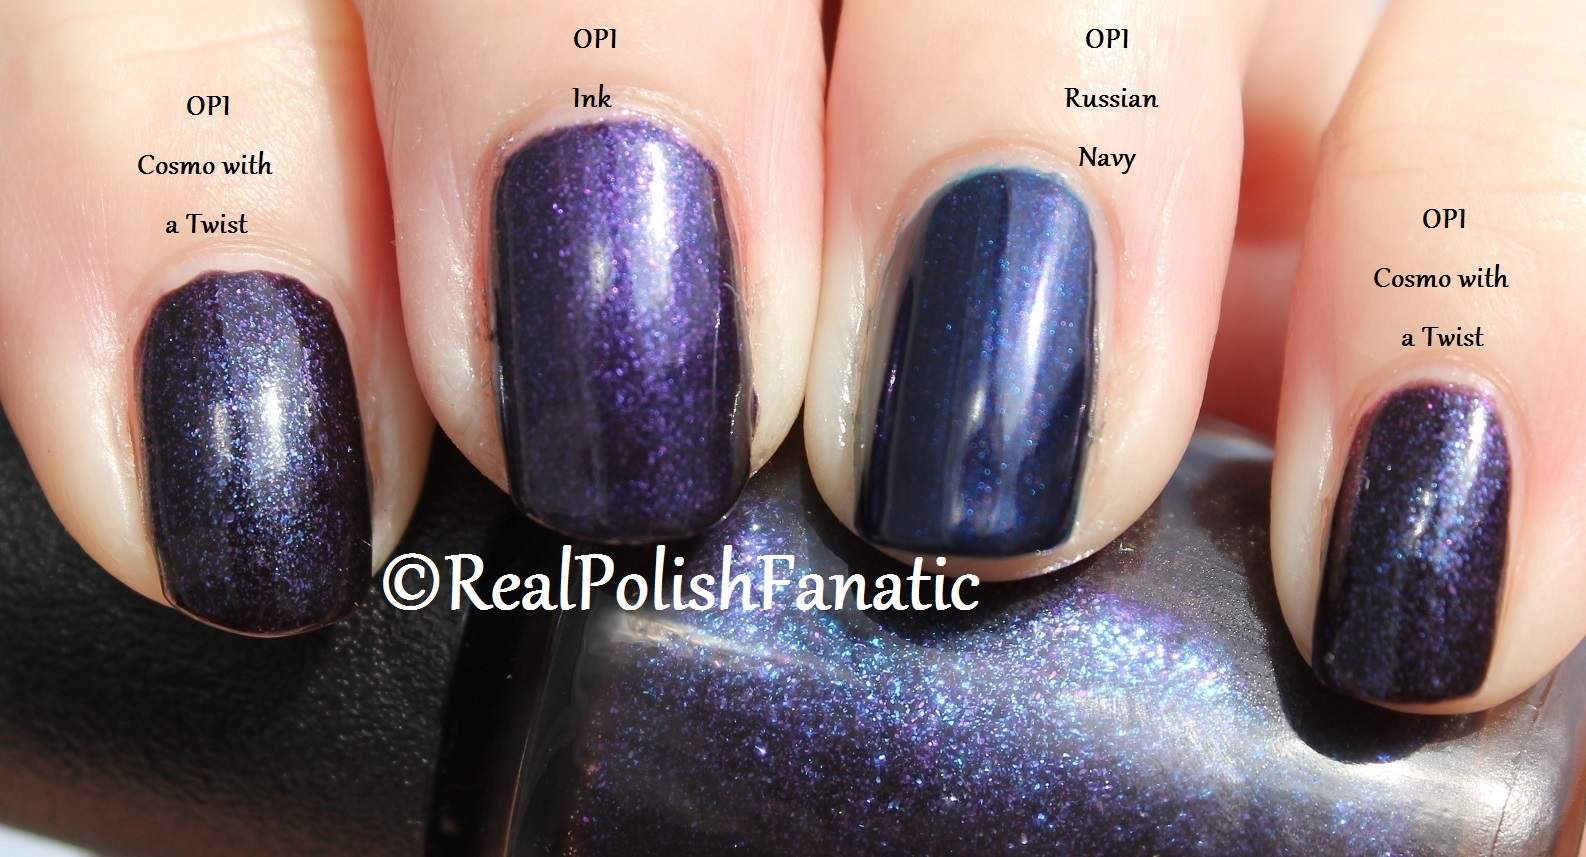 I Love The Purple Shimmer Of Ink Although Did Pick Up Opi Cosmo With A Twist Which Think Is Along Same Vein As Both Those